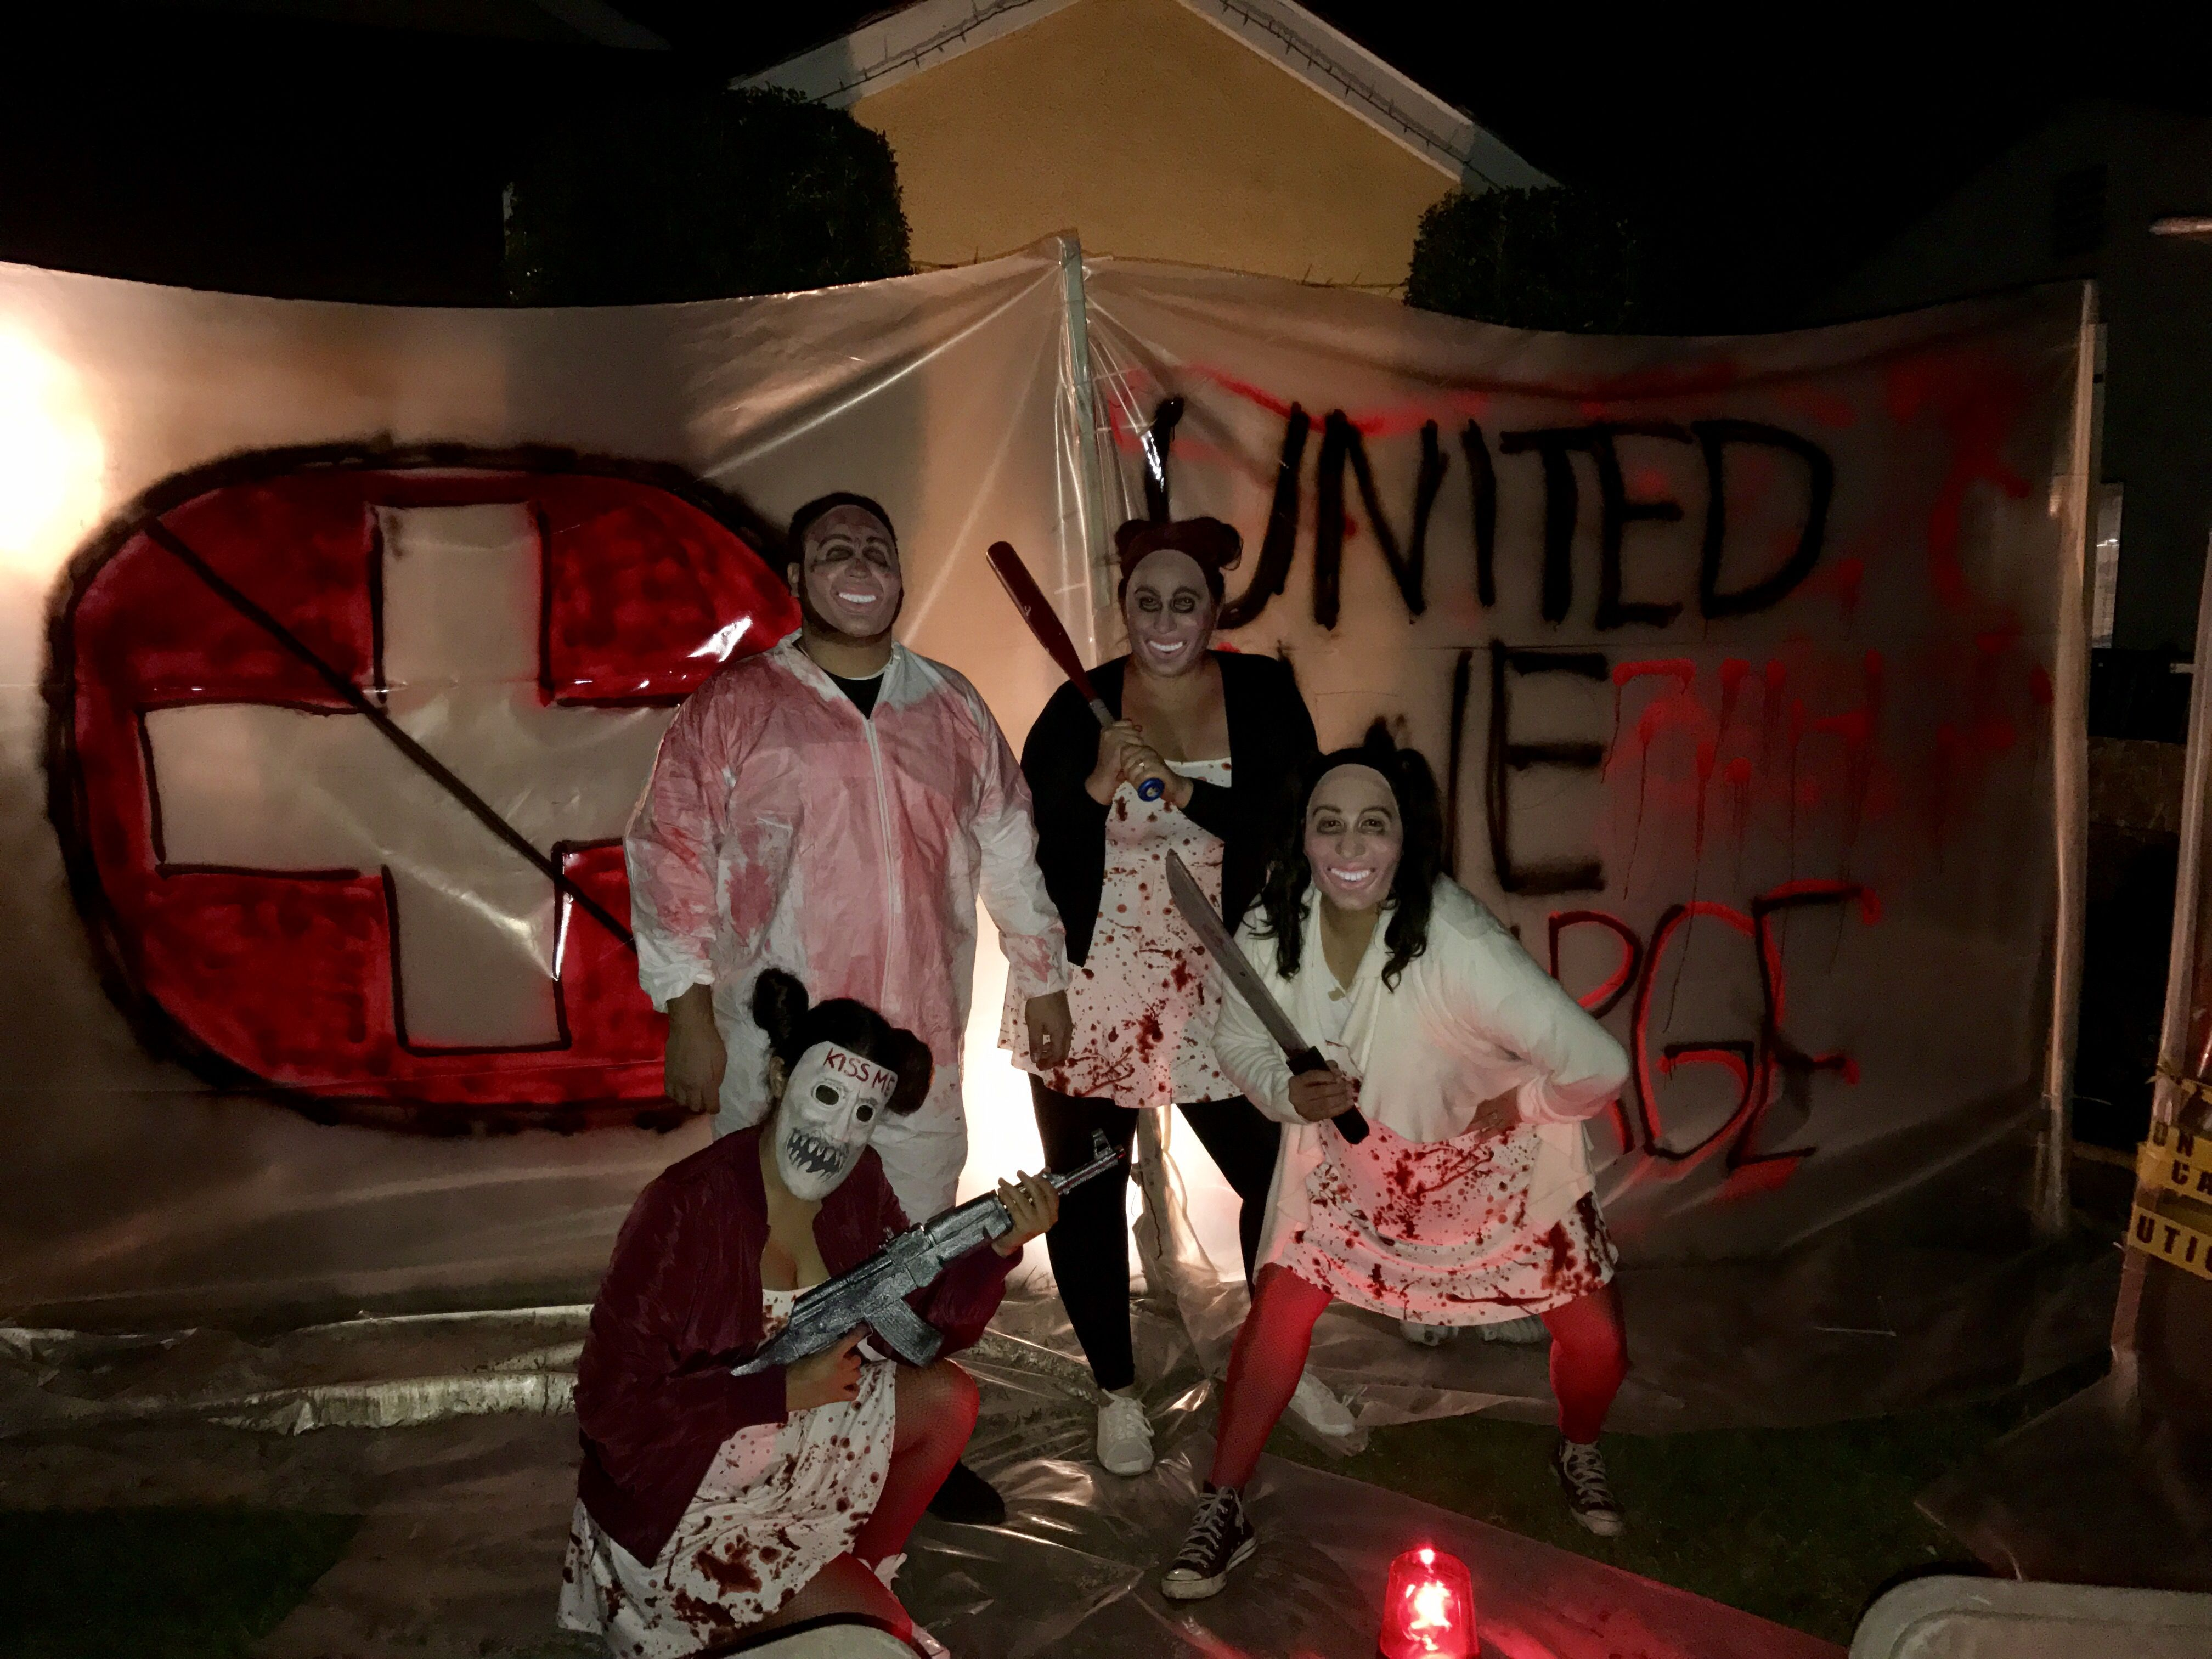 Pin on Haunted house 2016